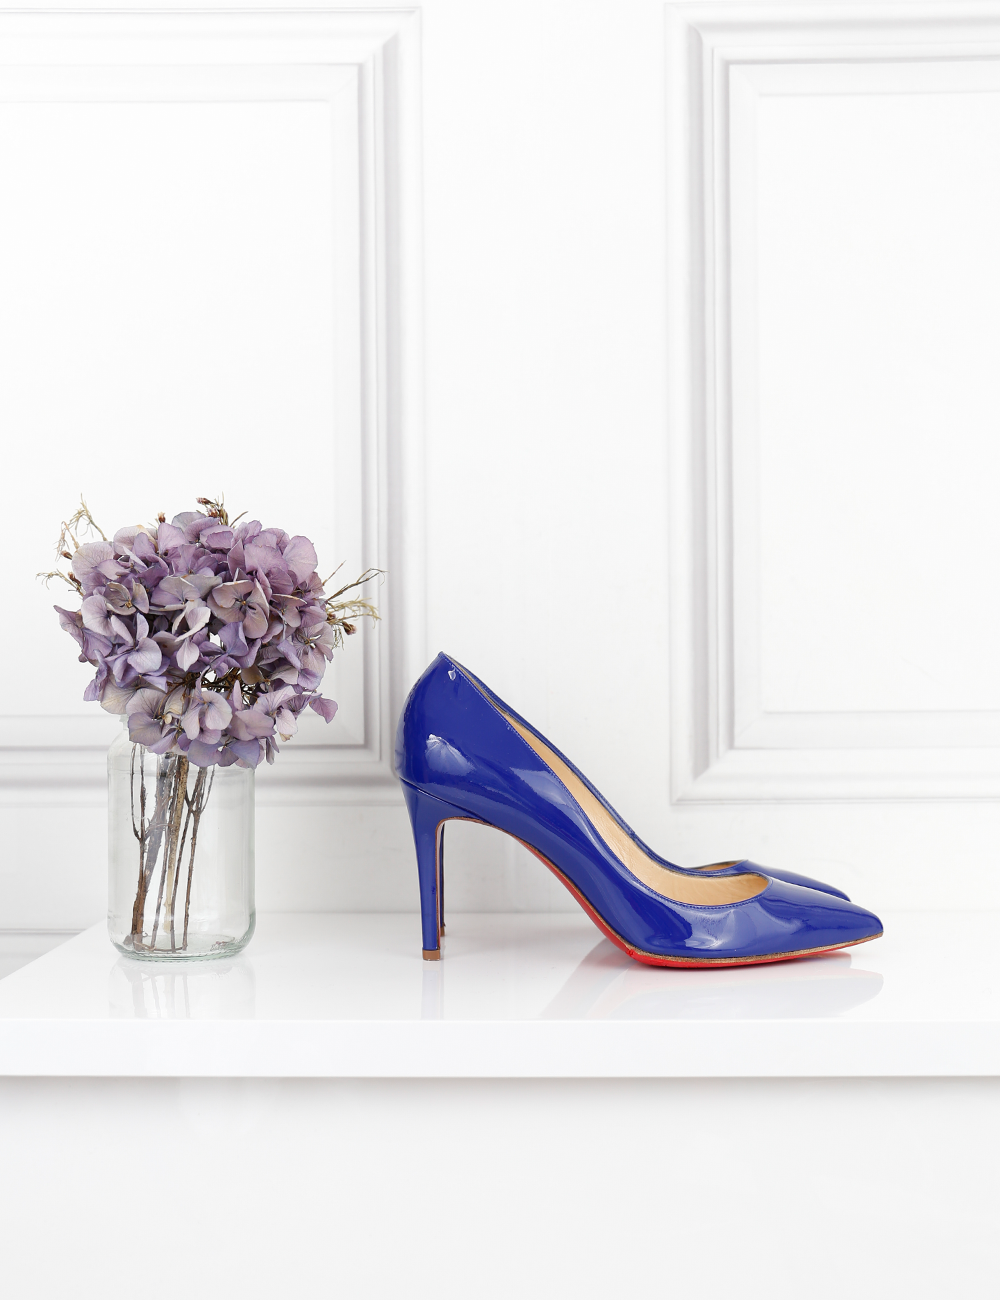 LOUBOUTIN SHOES Pigalle heel pumps